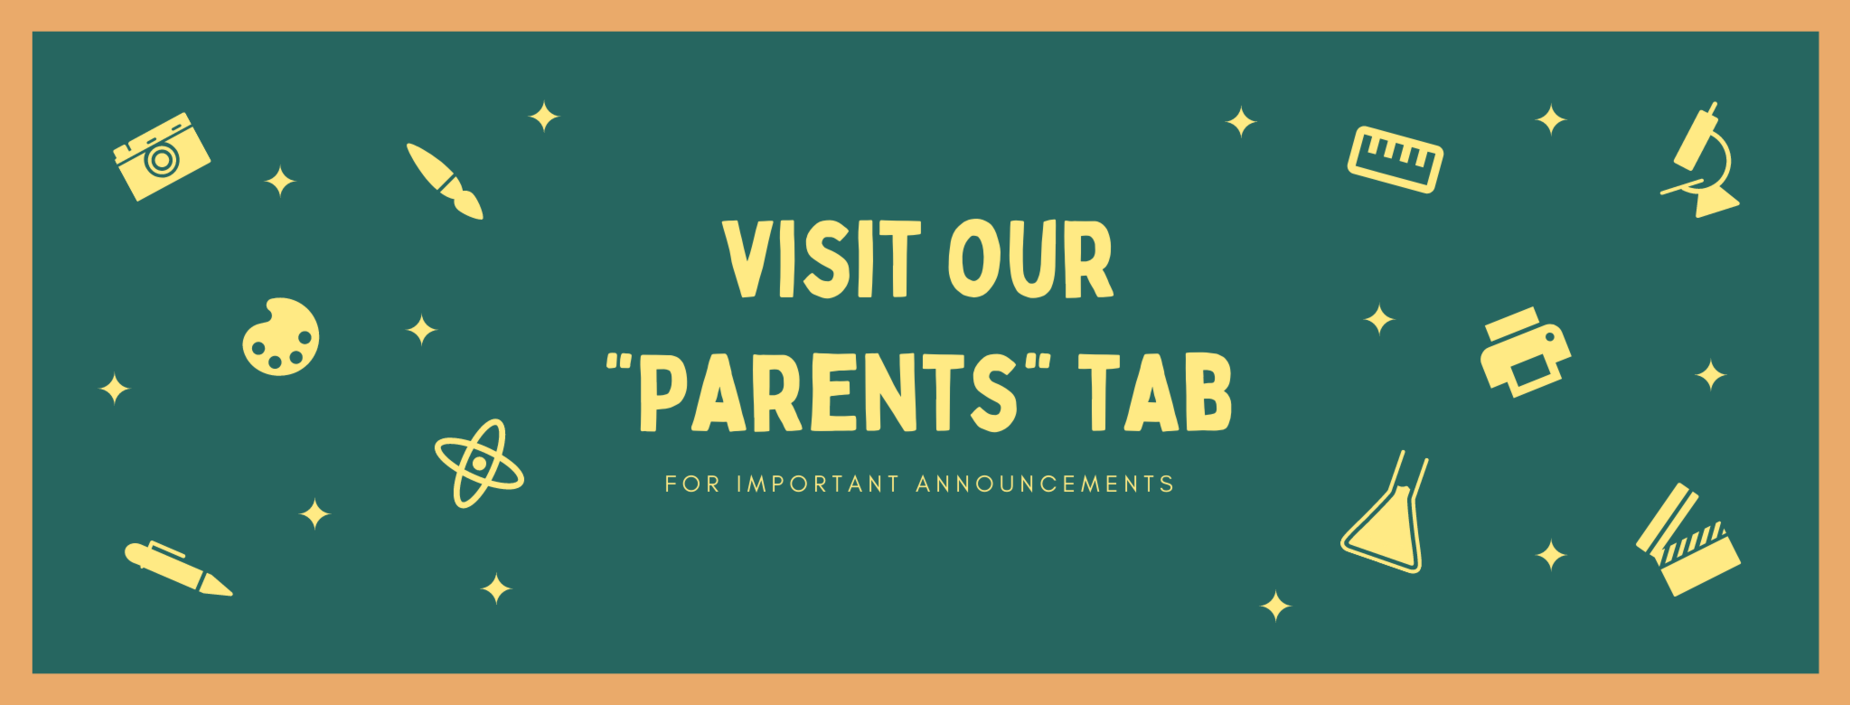 Visit our Parents tab